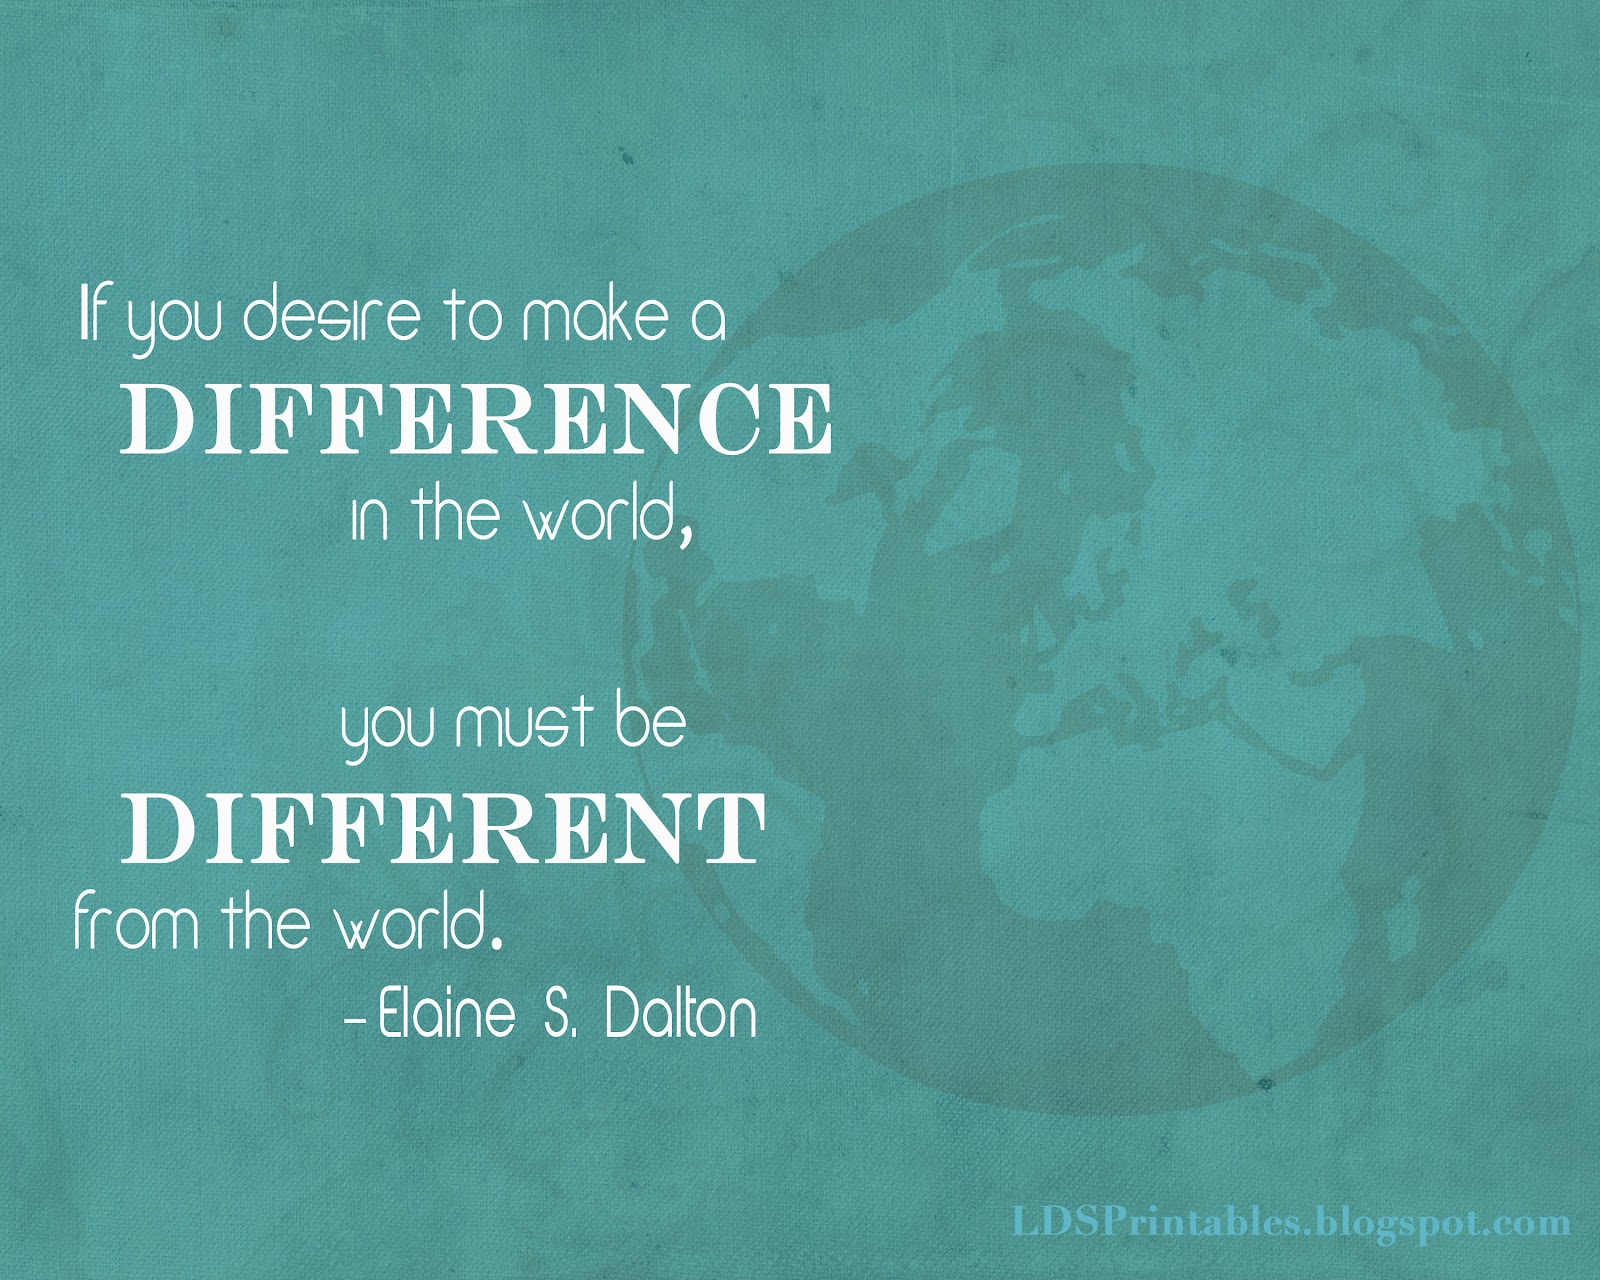 Make A Difference Quotes   Make A Difference Image Quotation 8 Sualci Quotes